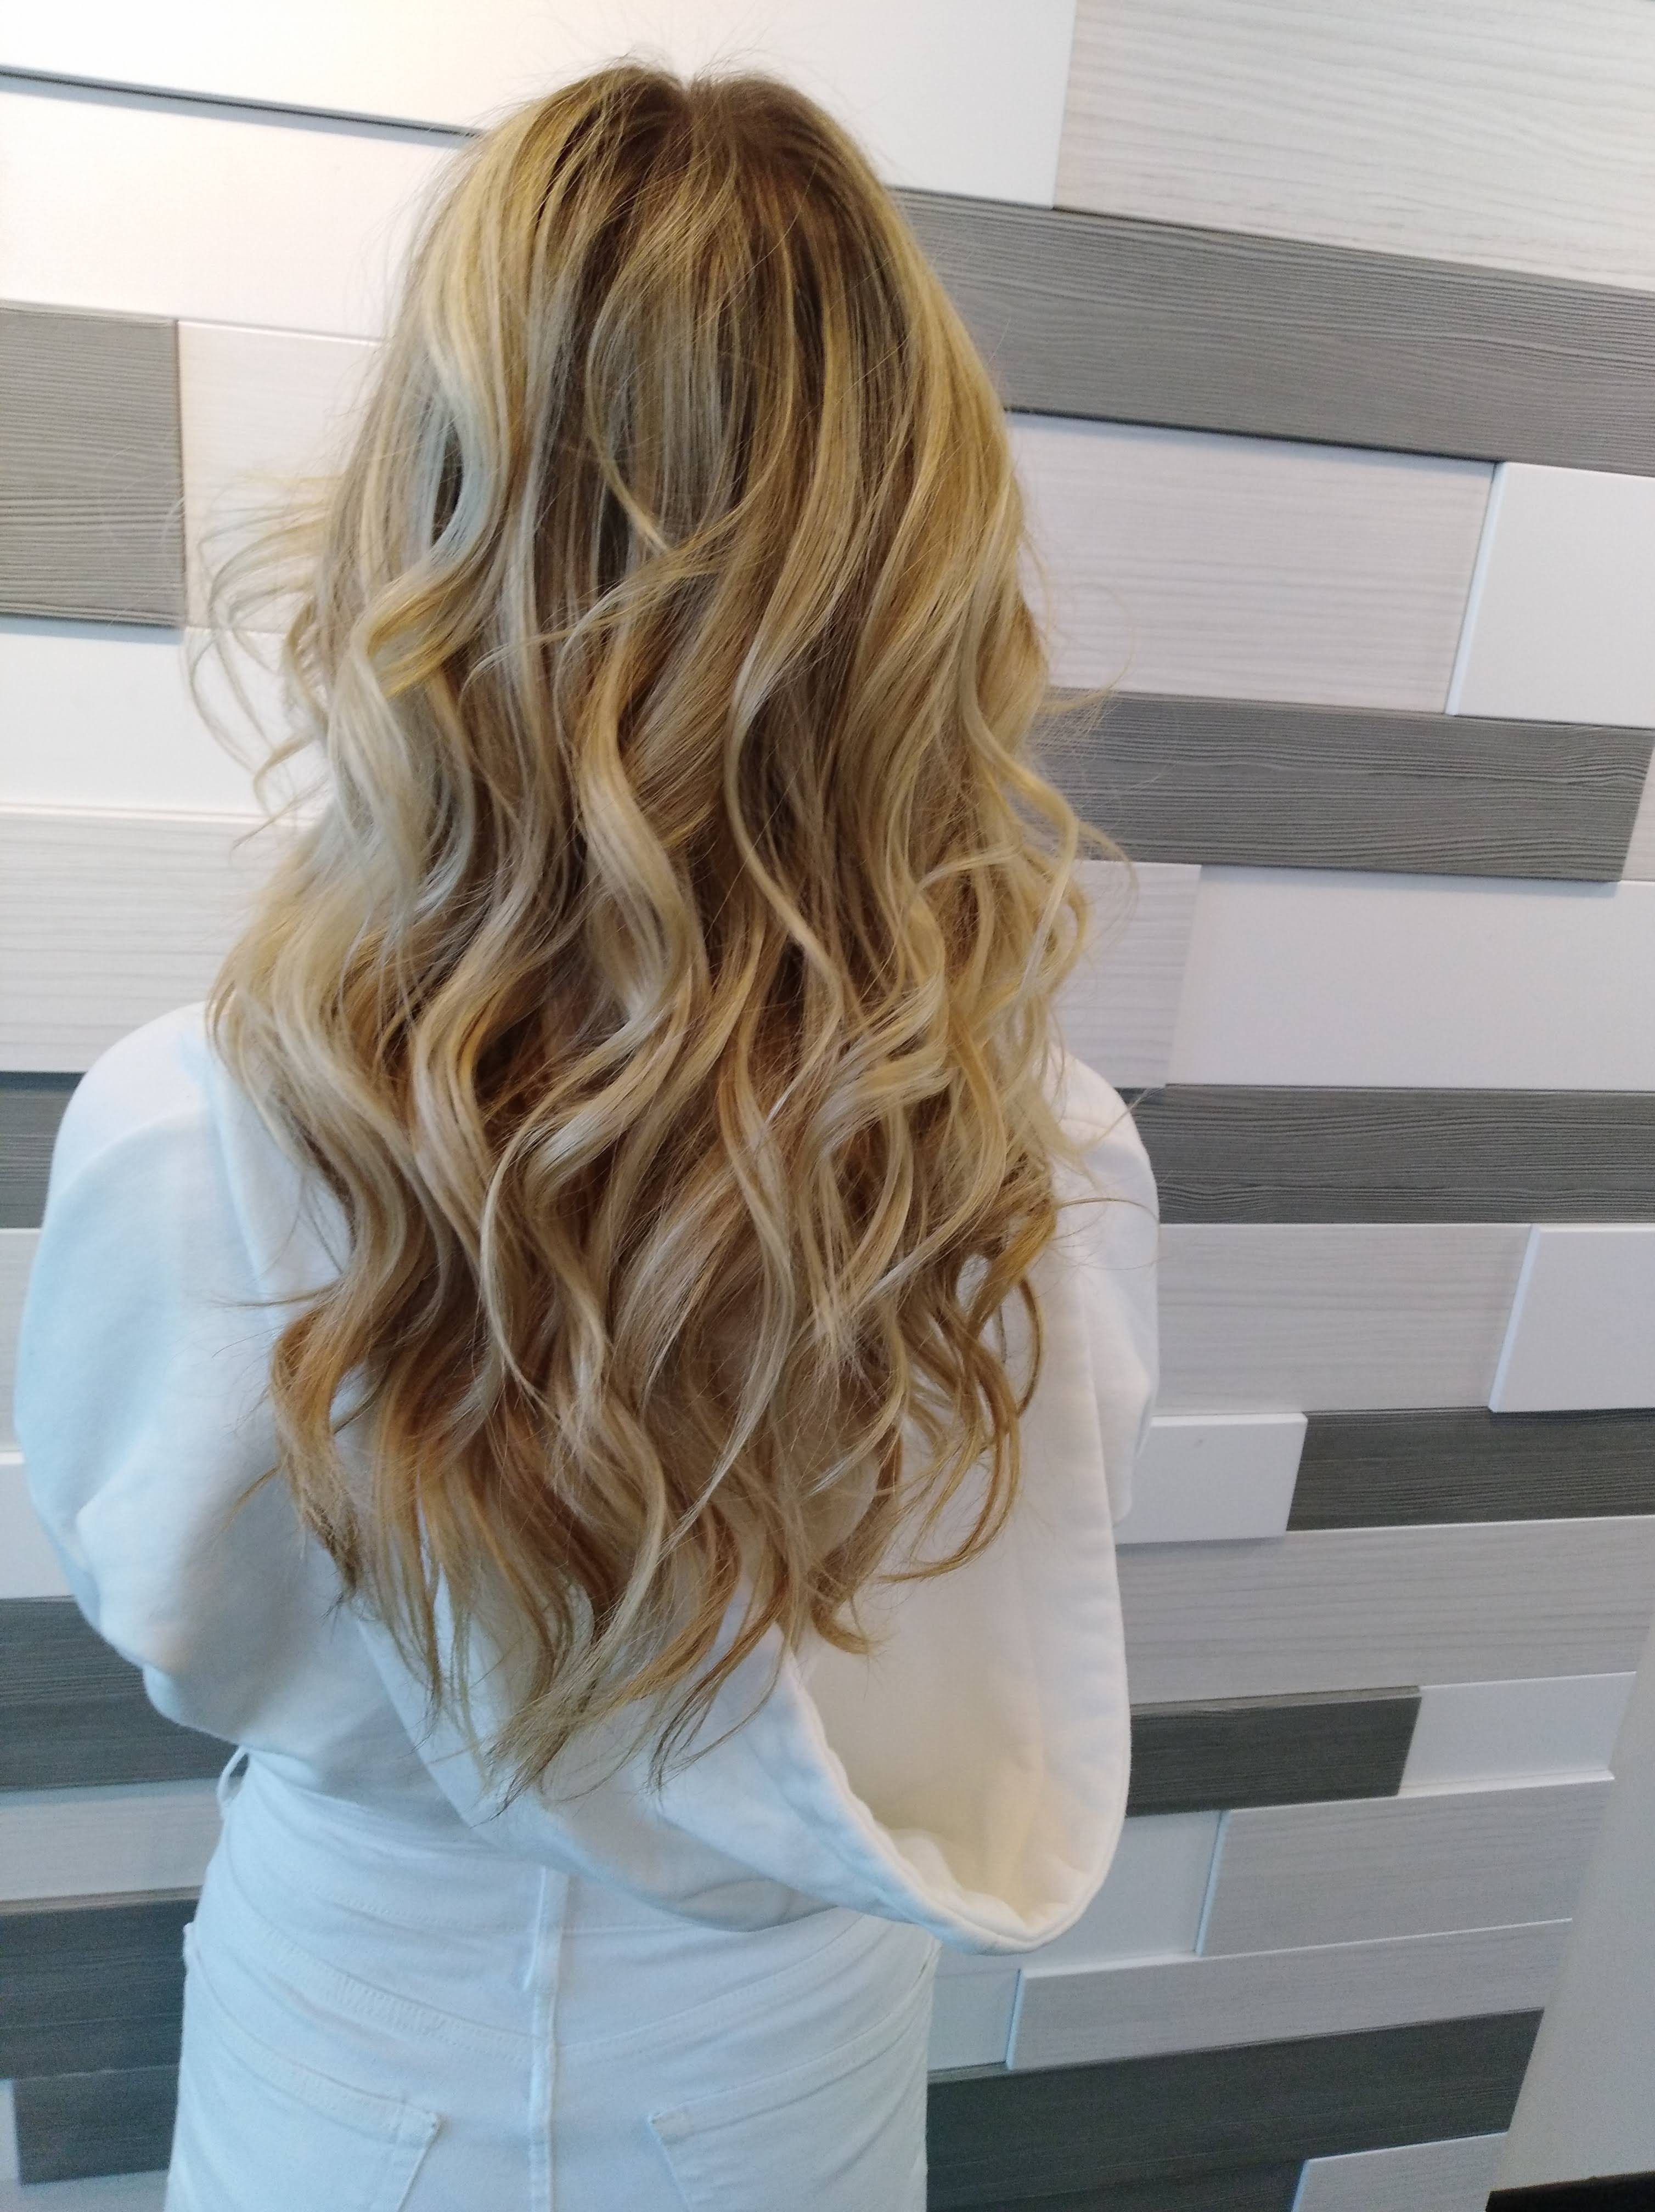 Blowout With Extensions